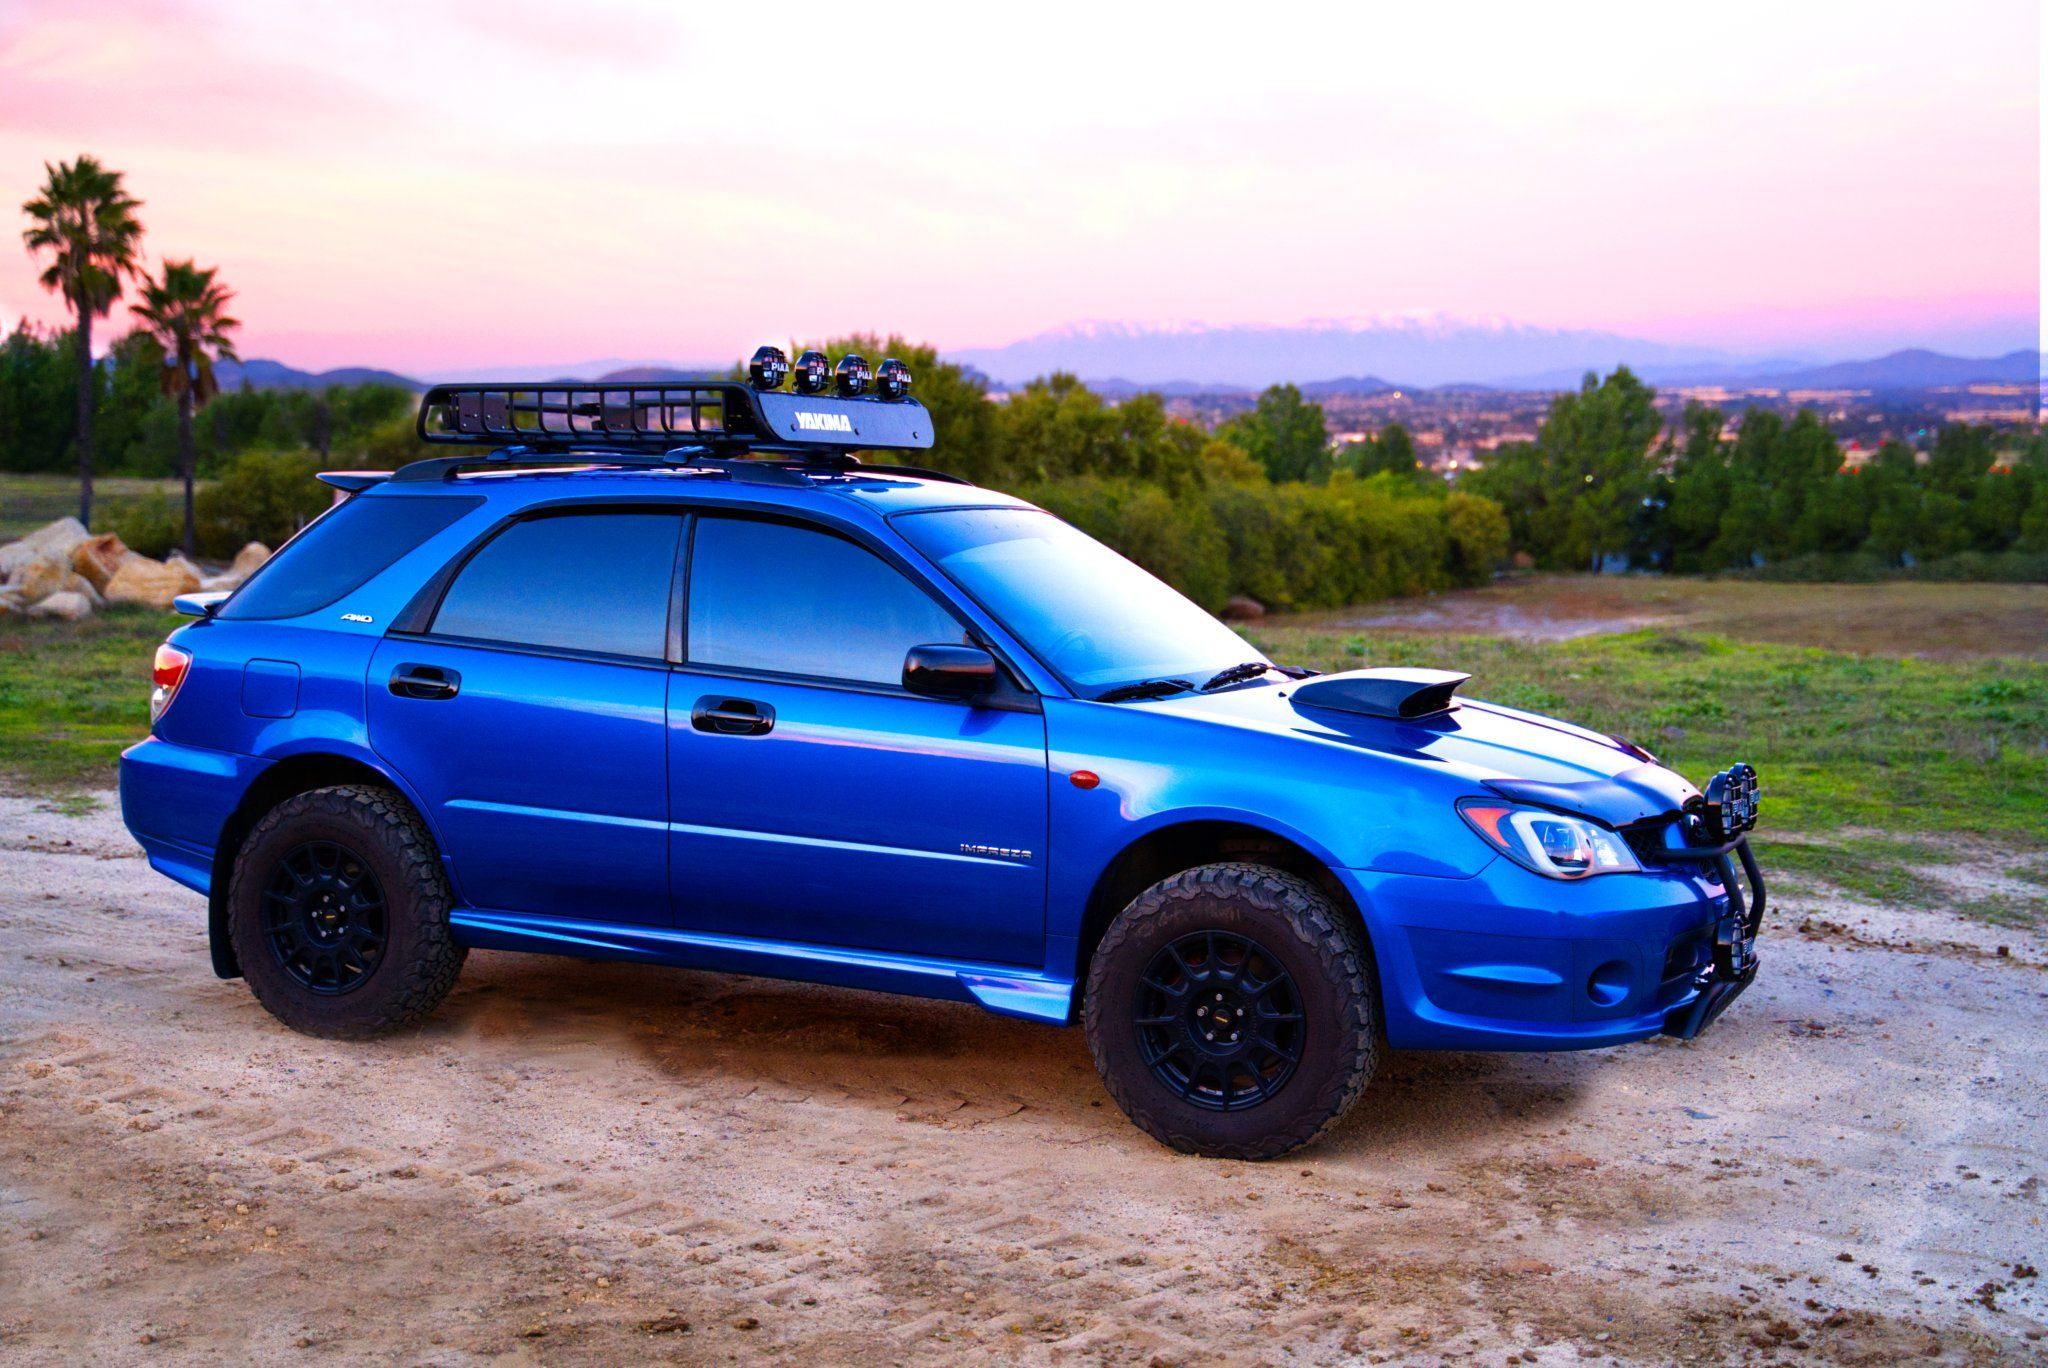 2007 Lifted Off Road Blue Subaru Impreza Wrx Wagon Ig Stephenotico In 2020 Wrx Wagon Lifted Subaru Subaru Wagon